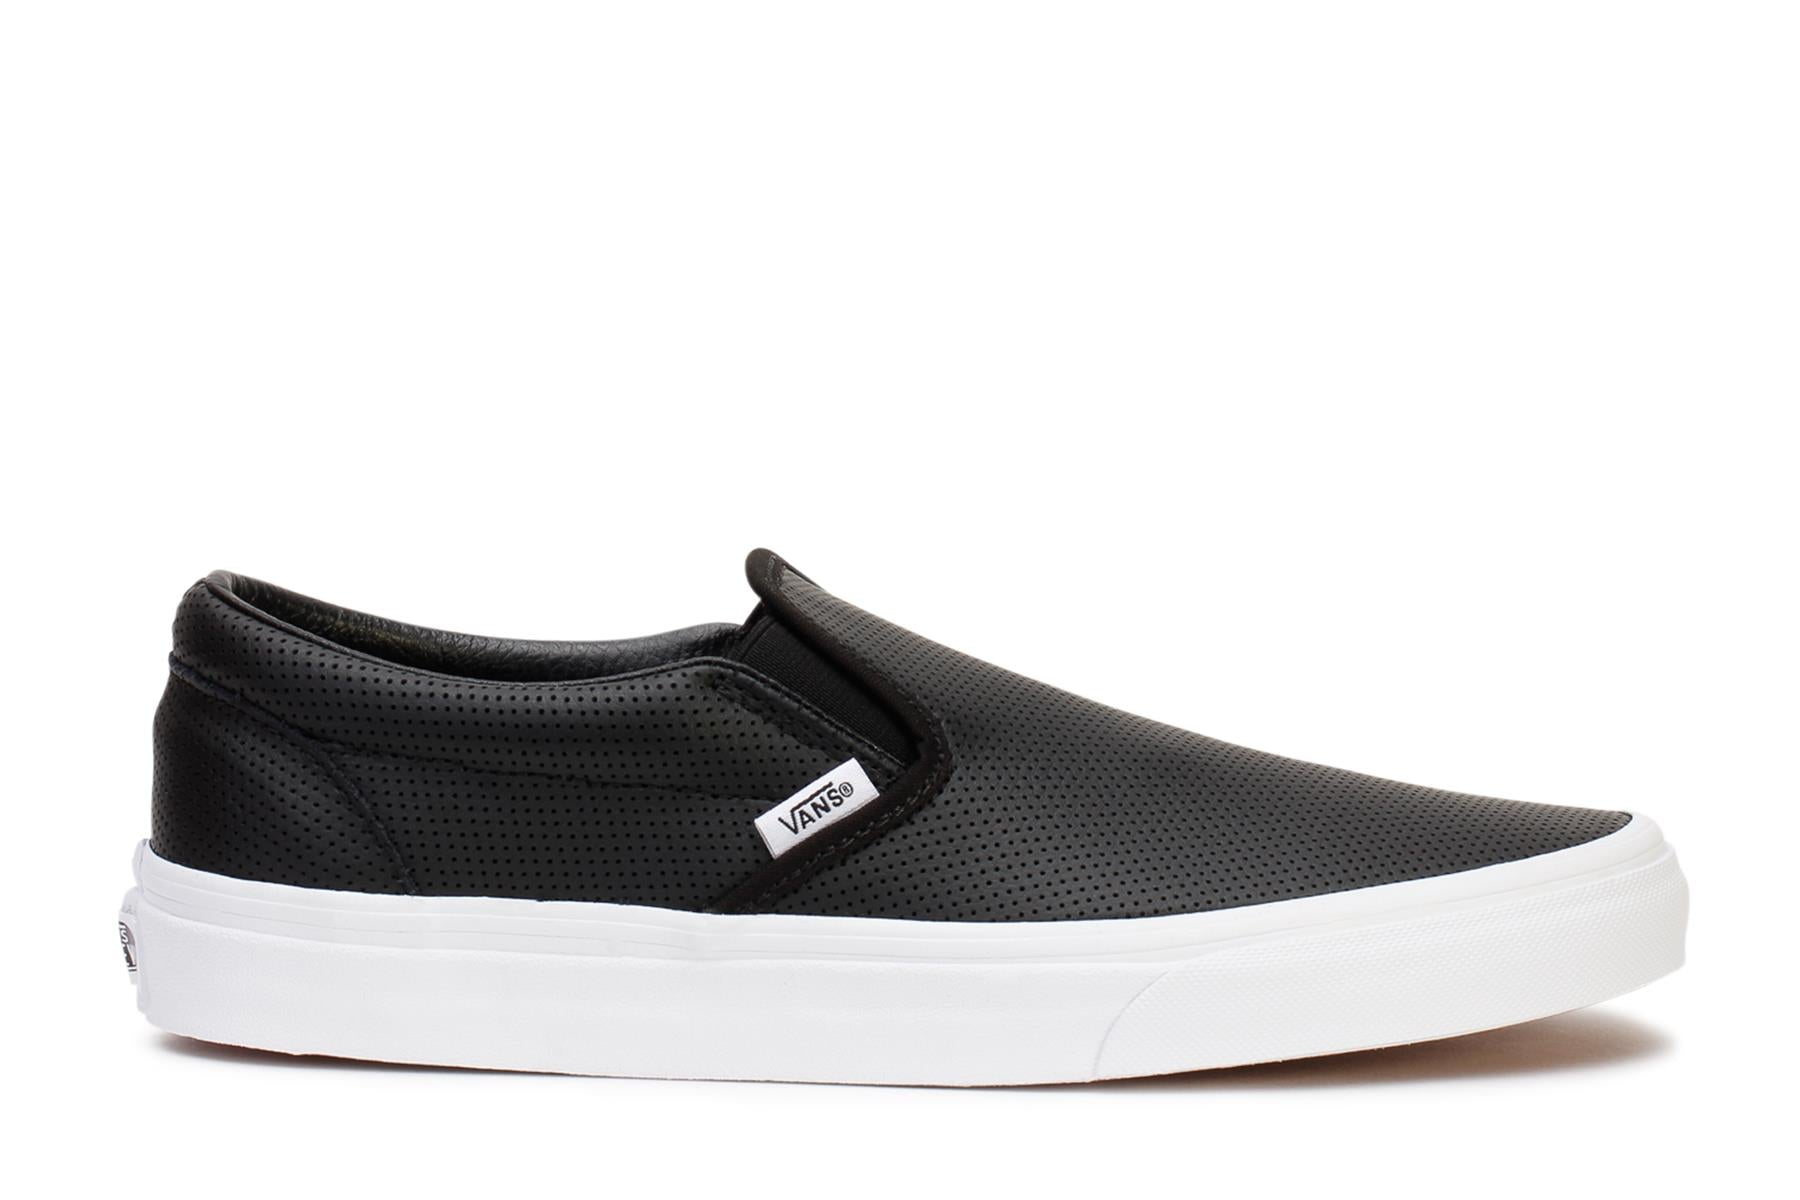 vans-mens-casual-sneakers-classic-slip-on-black-perf-leather-vn000xg8dj6-main